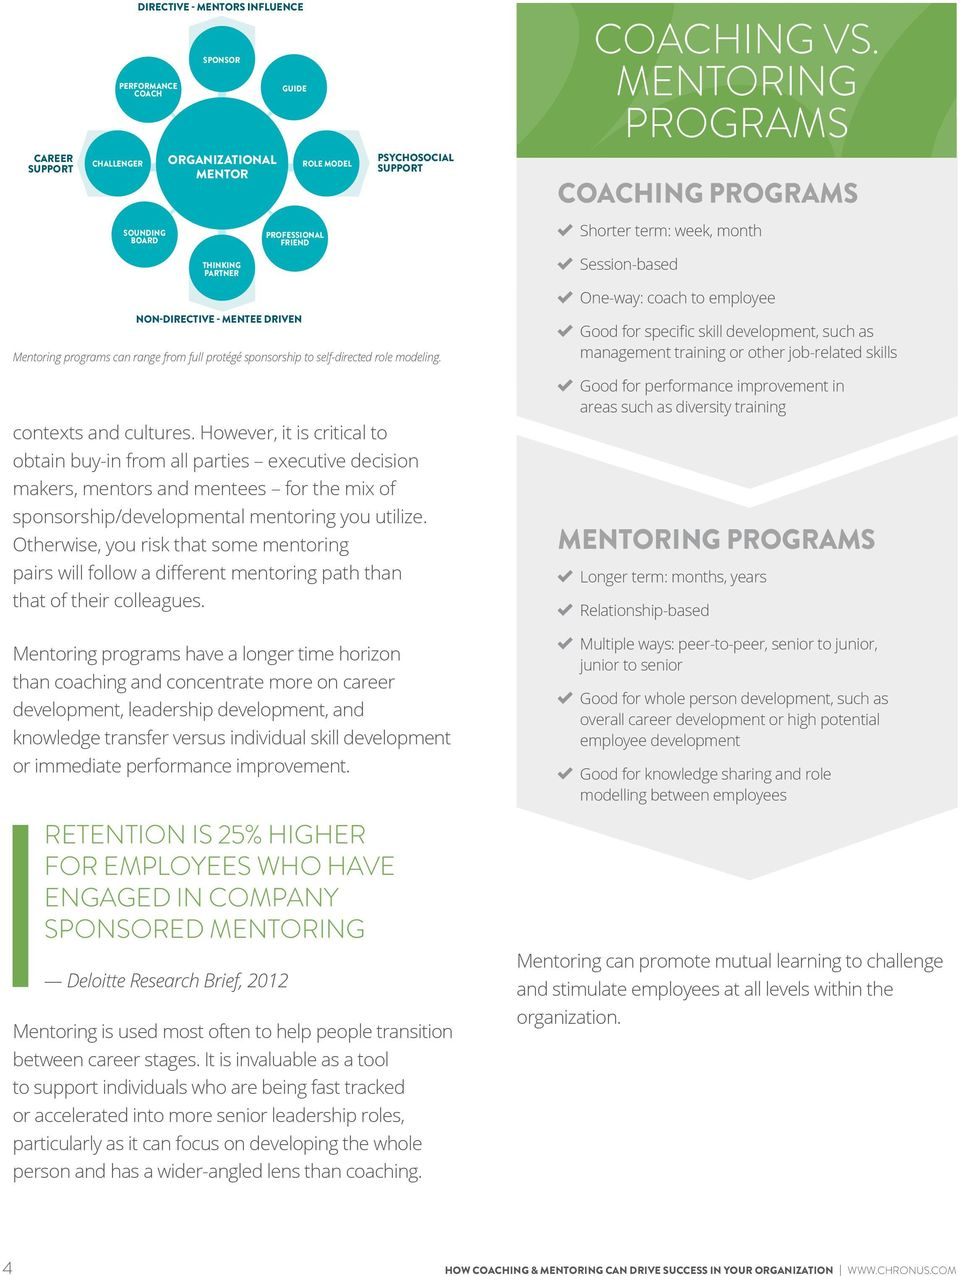 Session-based NON-DIRECTIVE - MENTEE DRIVEN Mentoring programs can range from full protégé sponsorship to self-directed role modeling. contexts and cultures.